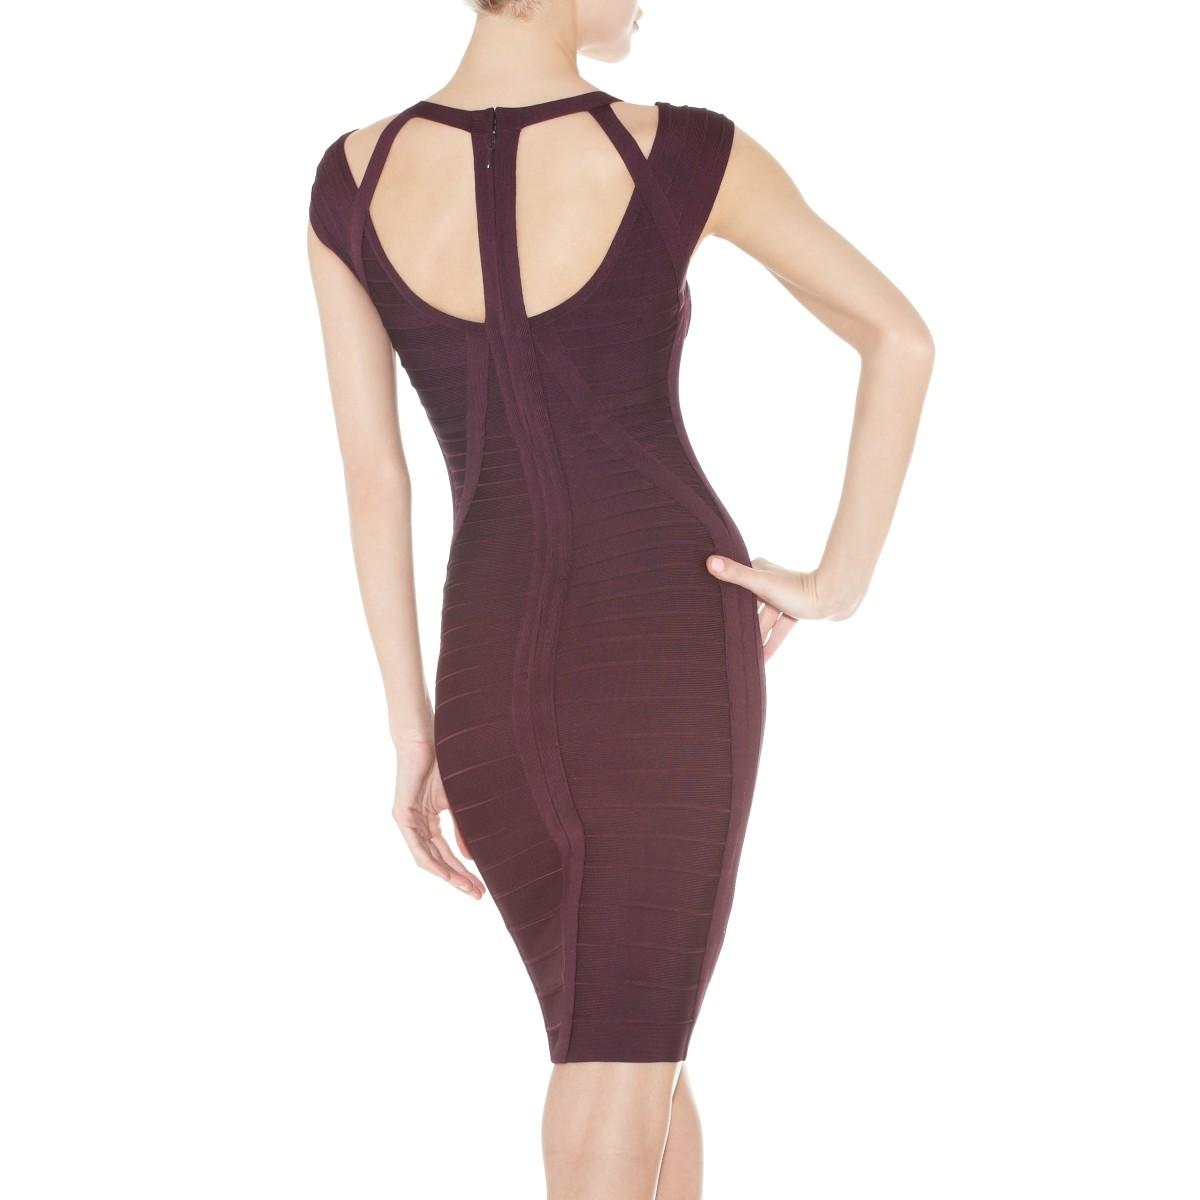 Herve Leger Azra Bandage Dress